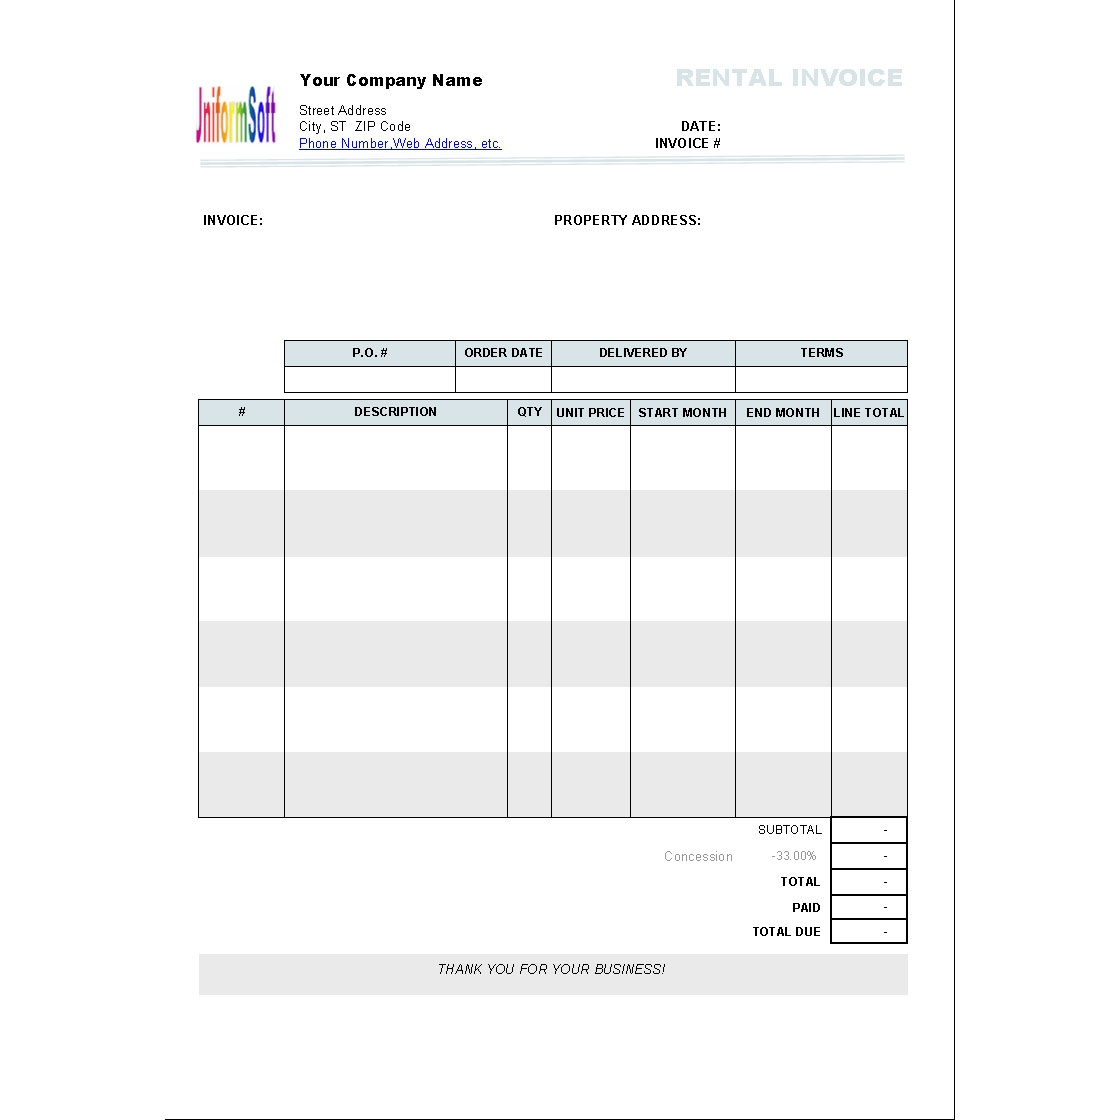 rental invoice template 110 free download freewarefiles rental invoice template excel